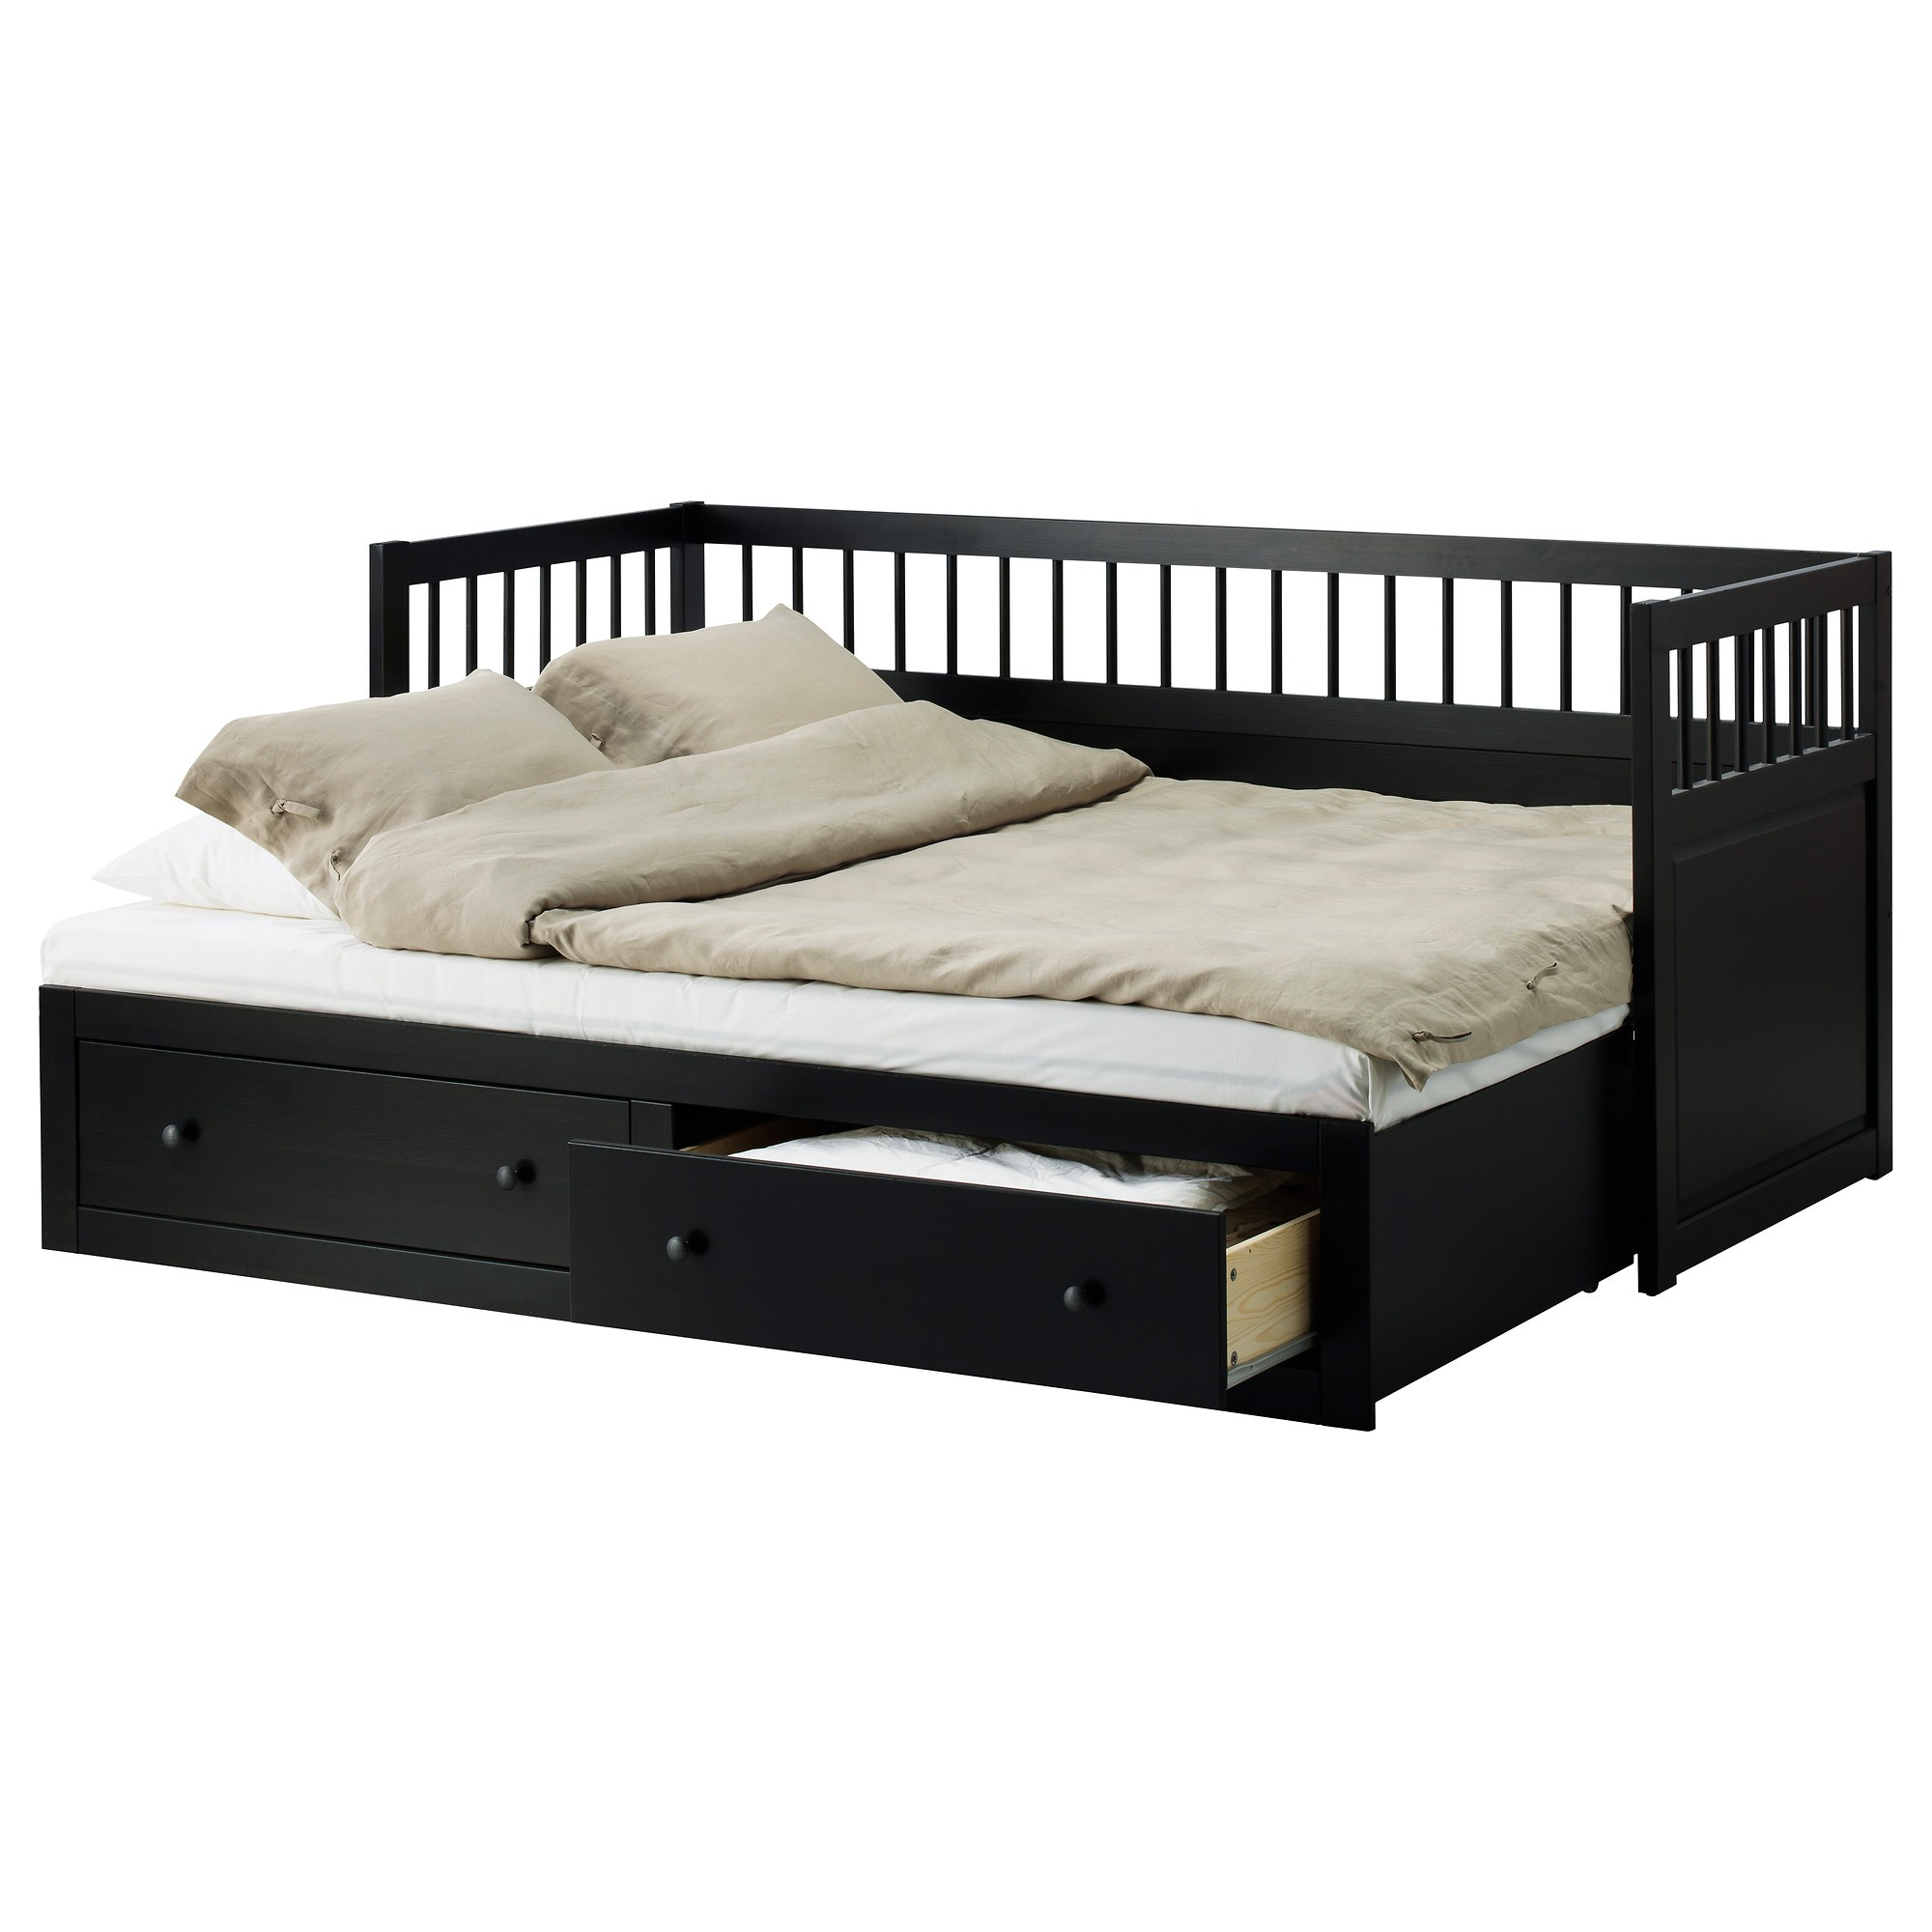 Daybed with Mattress | Platform Daybed | Full Daybed